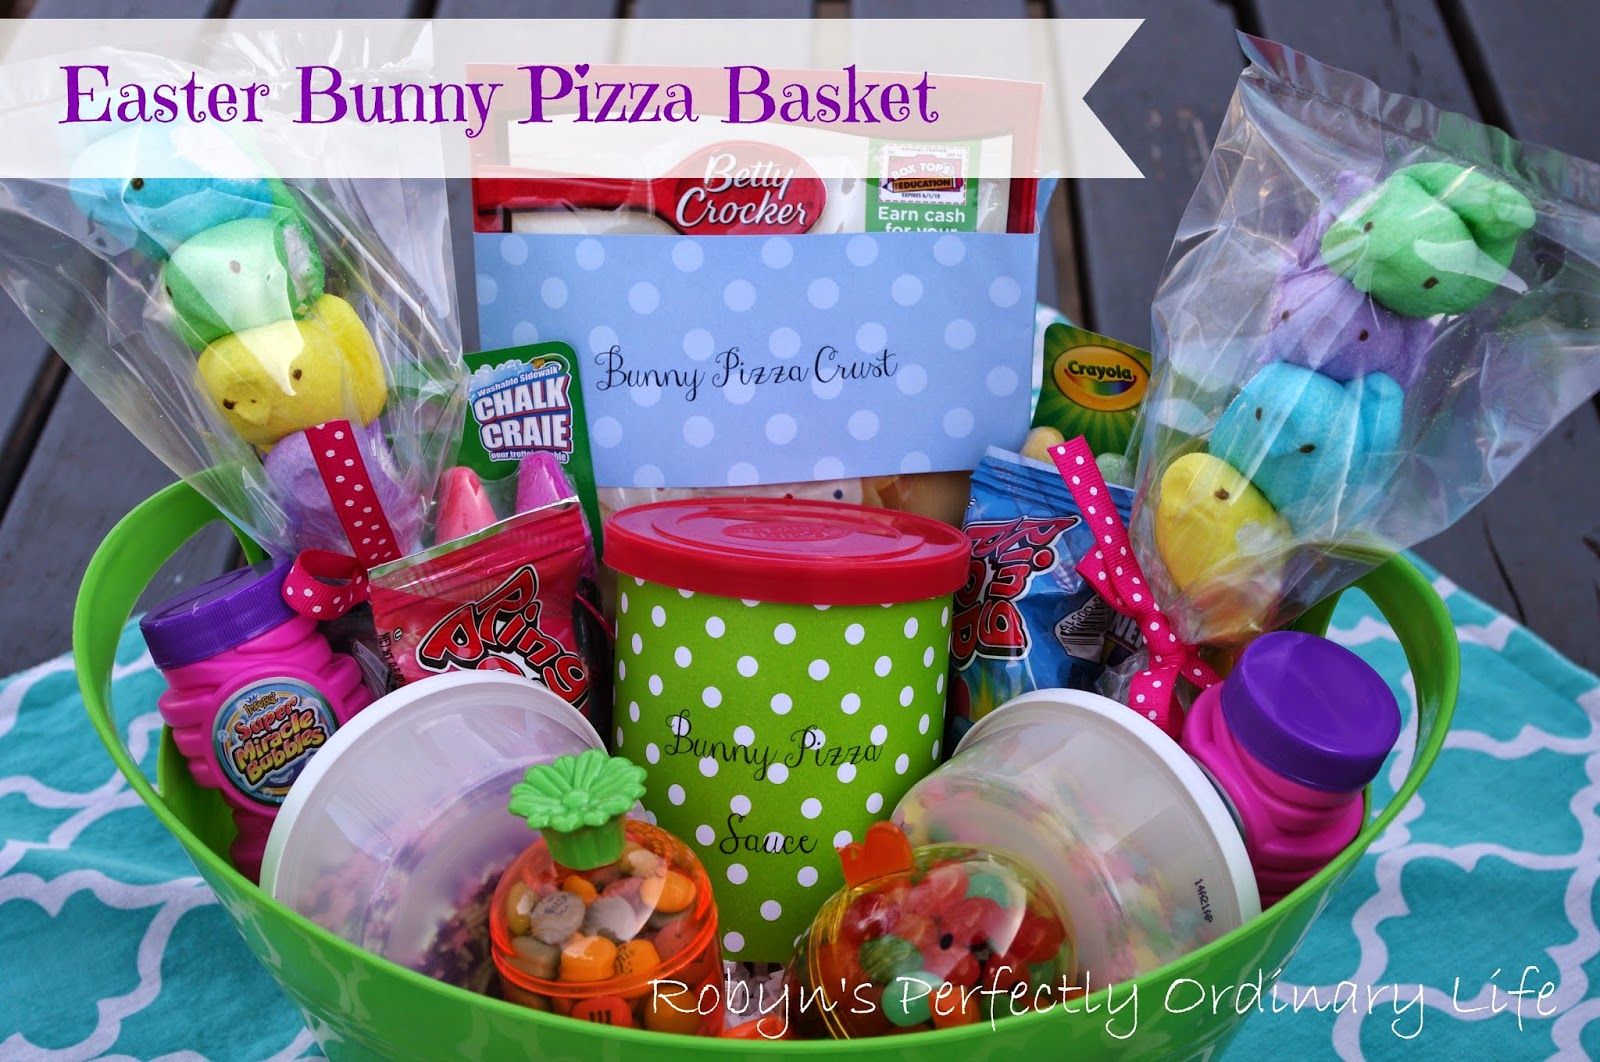 Robyns perfectly ordinary life easter bunny cookie pizza basket simple and fun gift basket idea hope you enjoyed stopping by negle Gallery